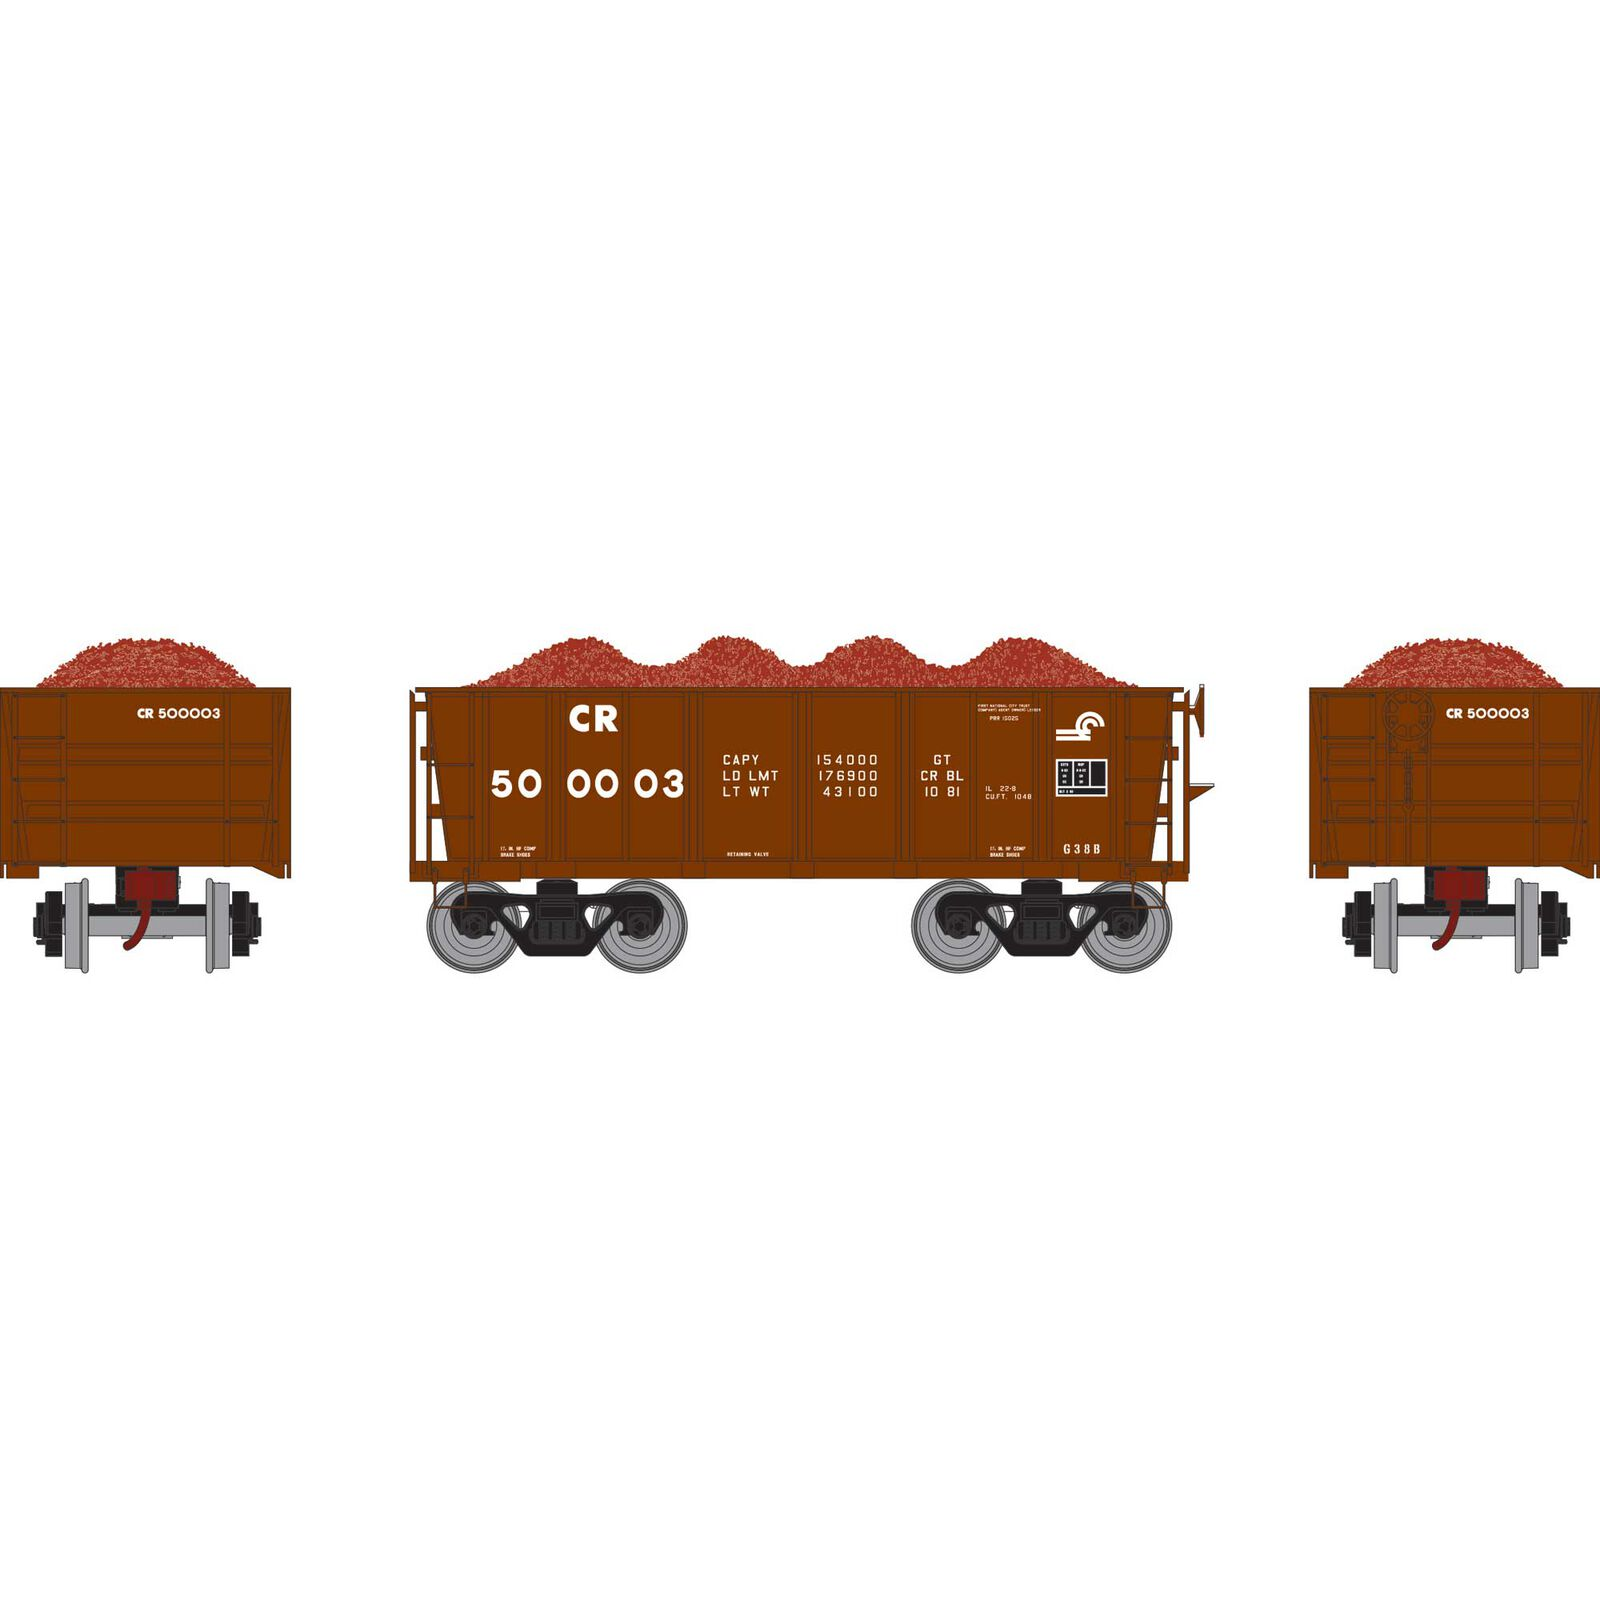 HO RTR 26' Ore Car Low Side with Load, CR #500003